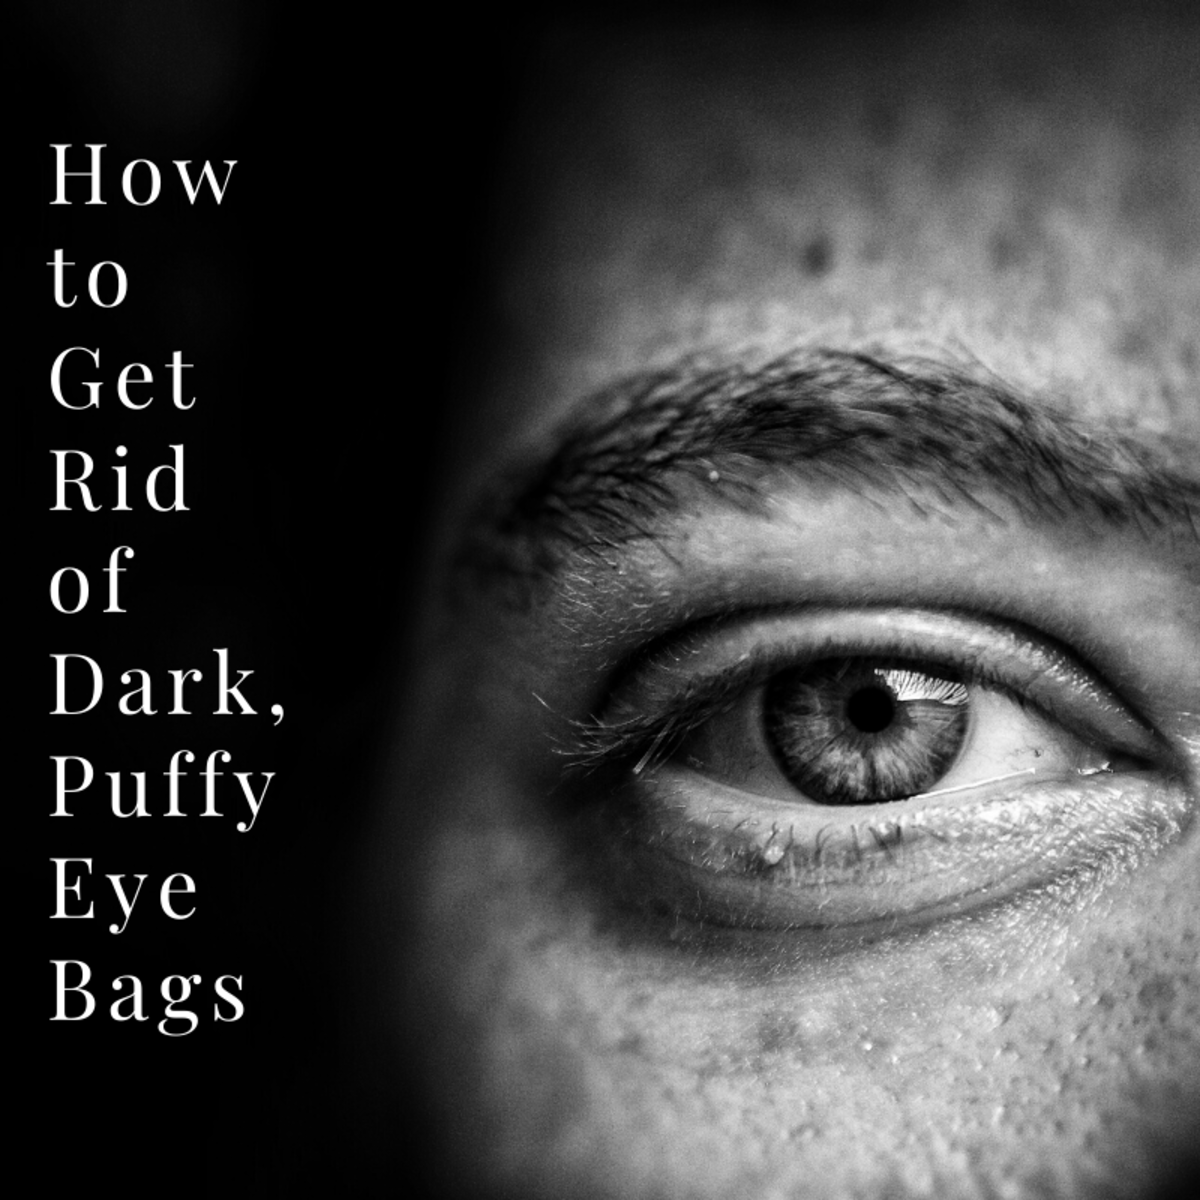 This article will break down what causes dark bags under the eyes and what you can do about them.